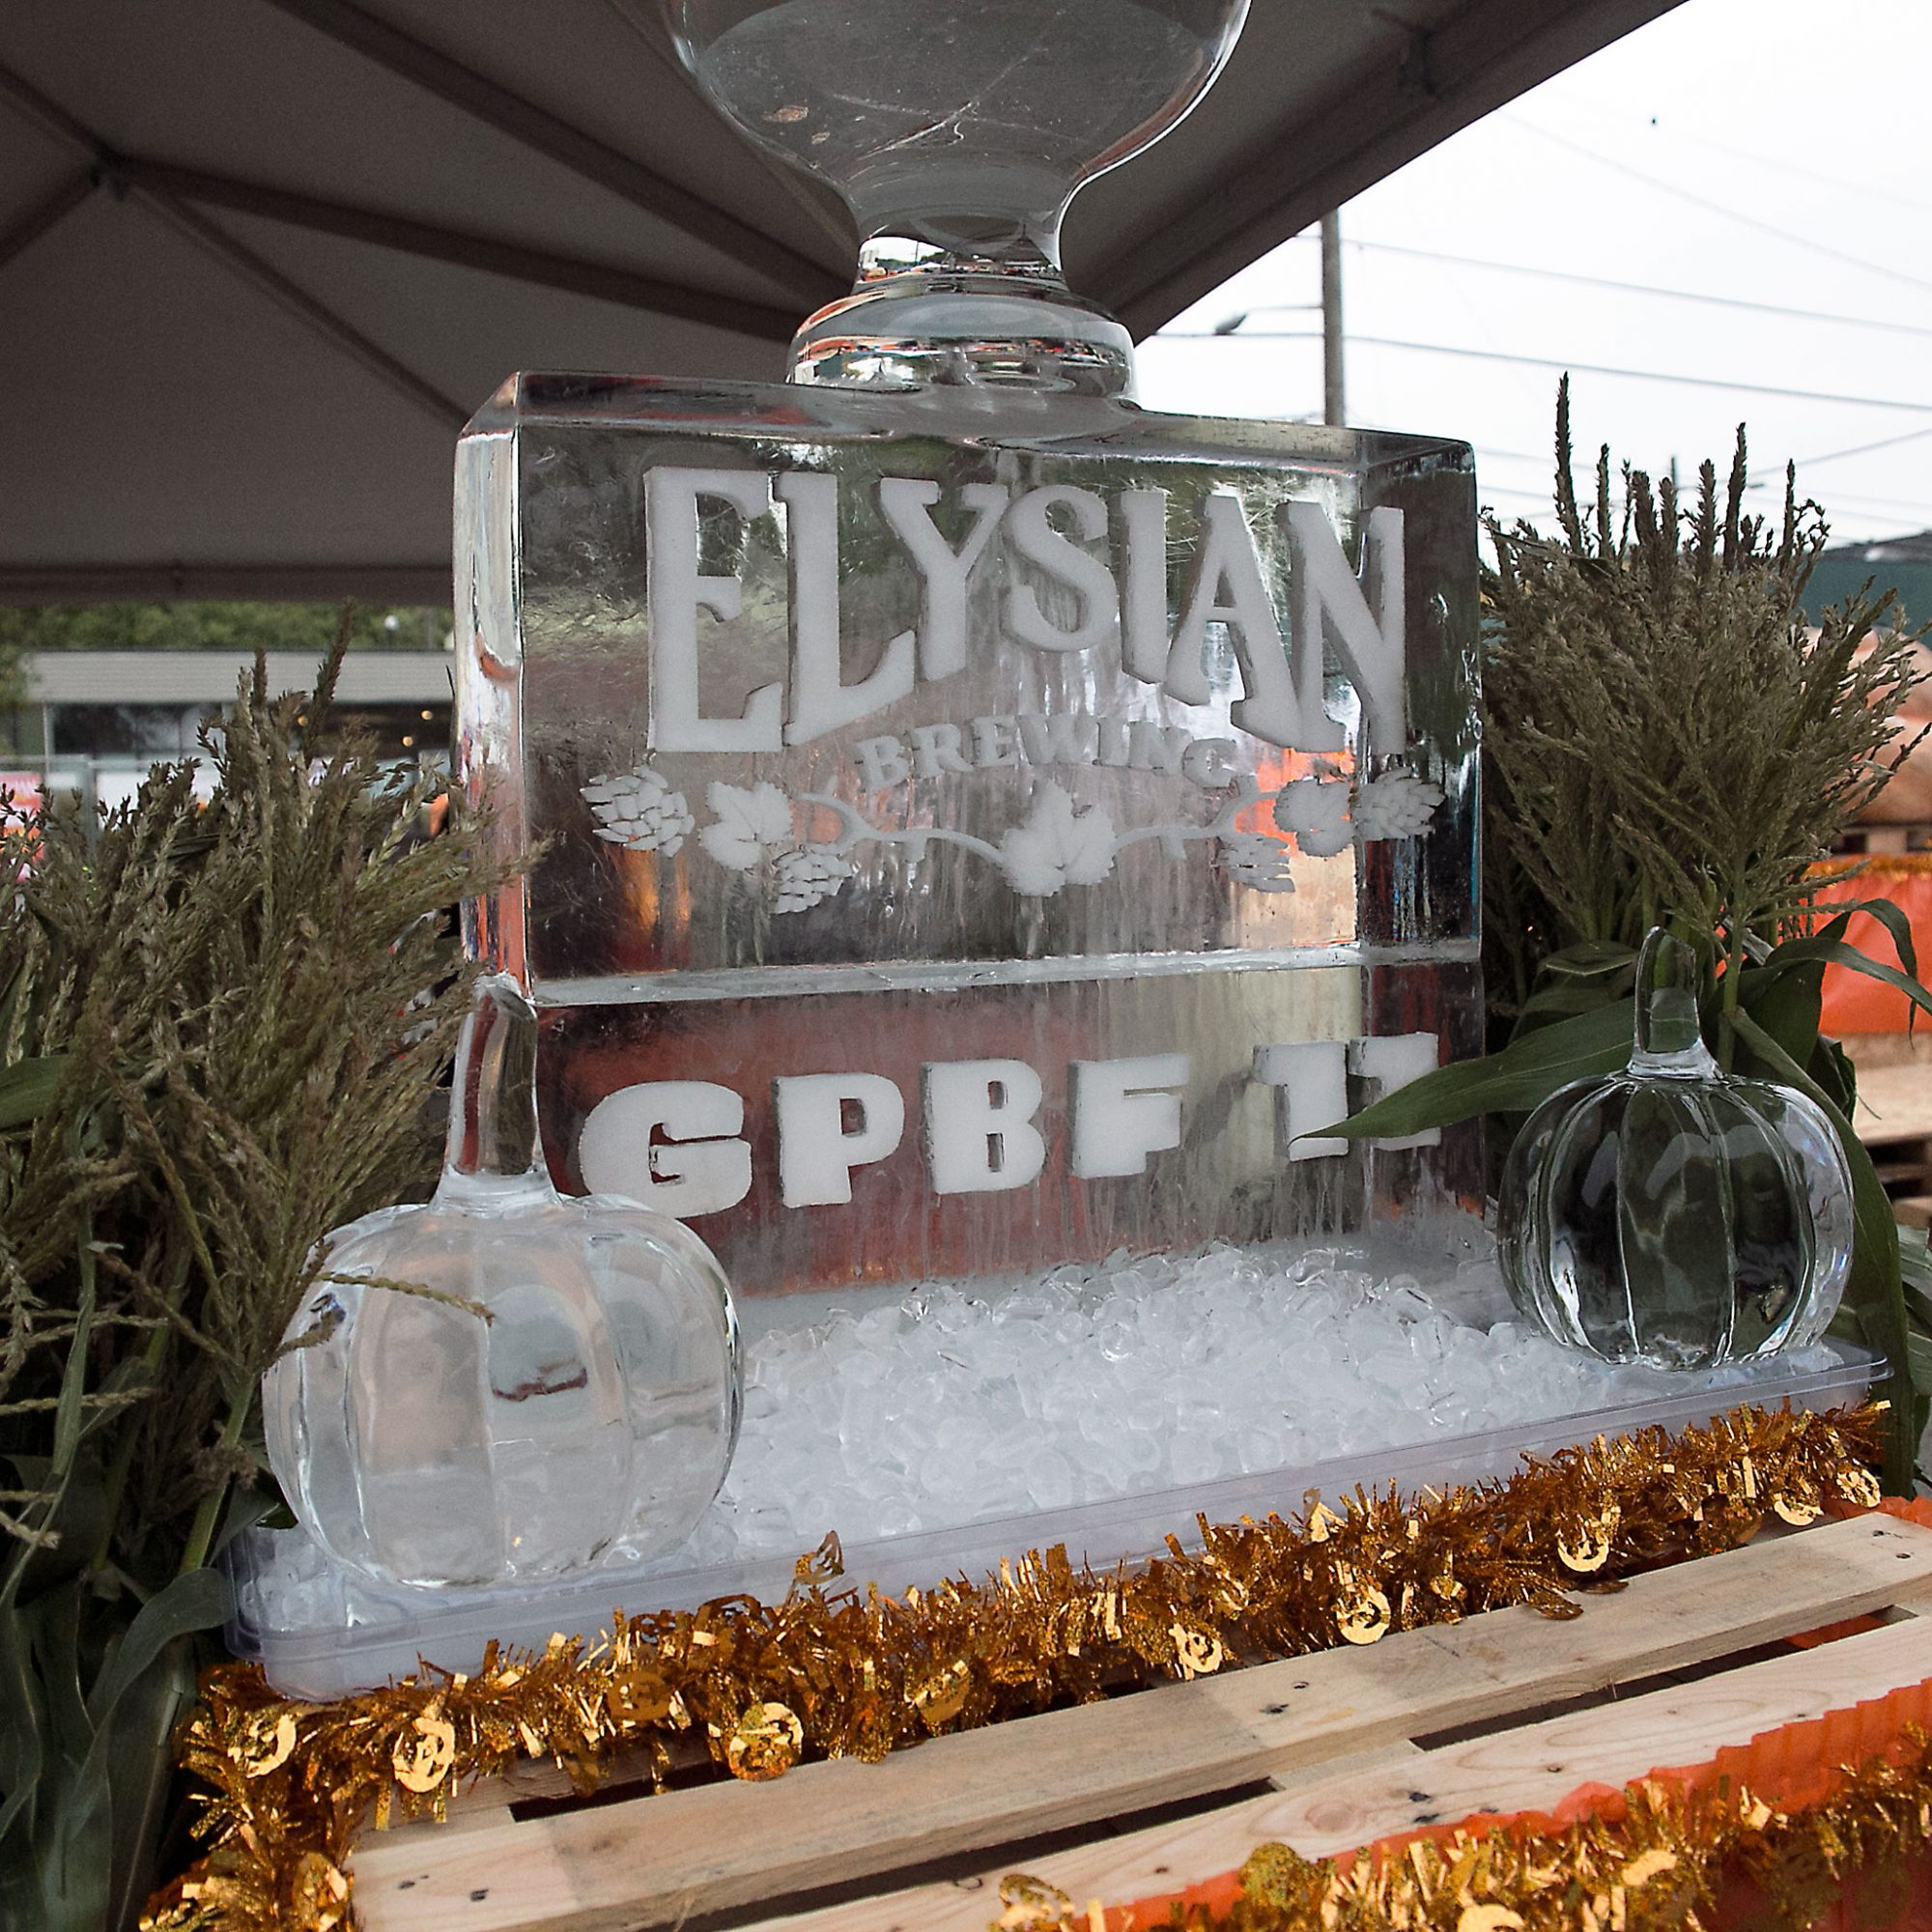 A Day at the World's Best Pumpkin Beer Fest